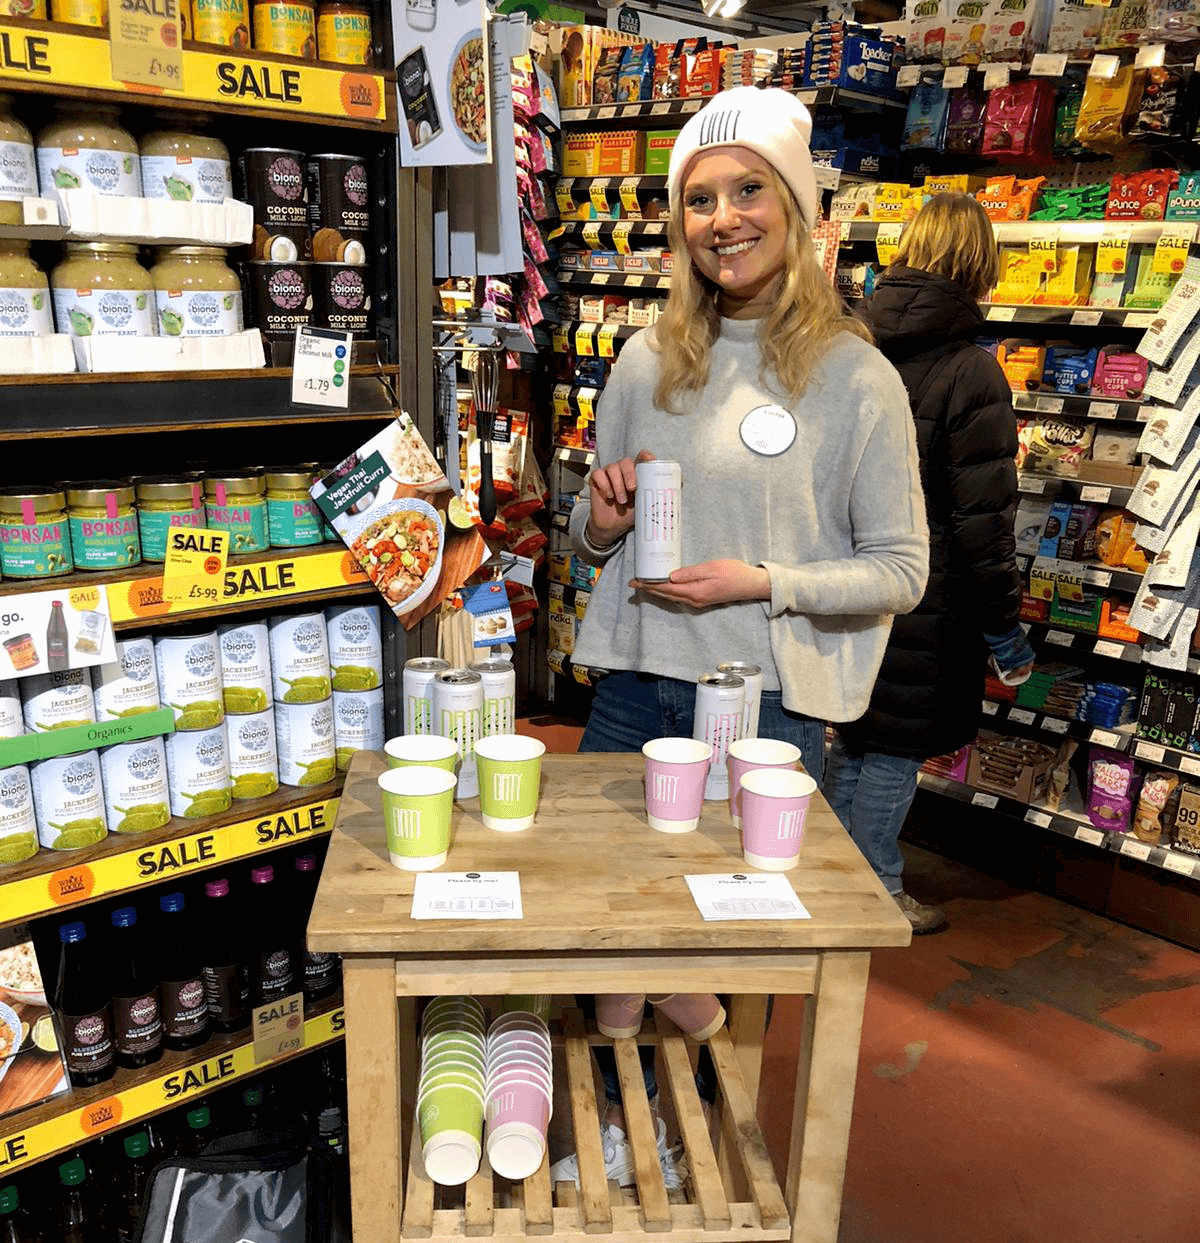 Female brand ambassador with long, blonde hair and wearing a white beanie hat with 'Drty' written on it. She is standing behind a table giving out free samples of Drty Drinks hard seltzer alcohol from cans.